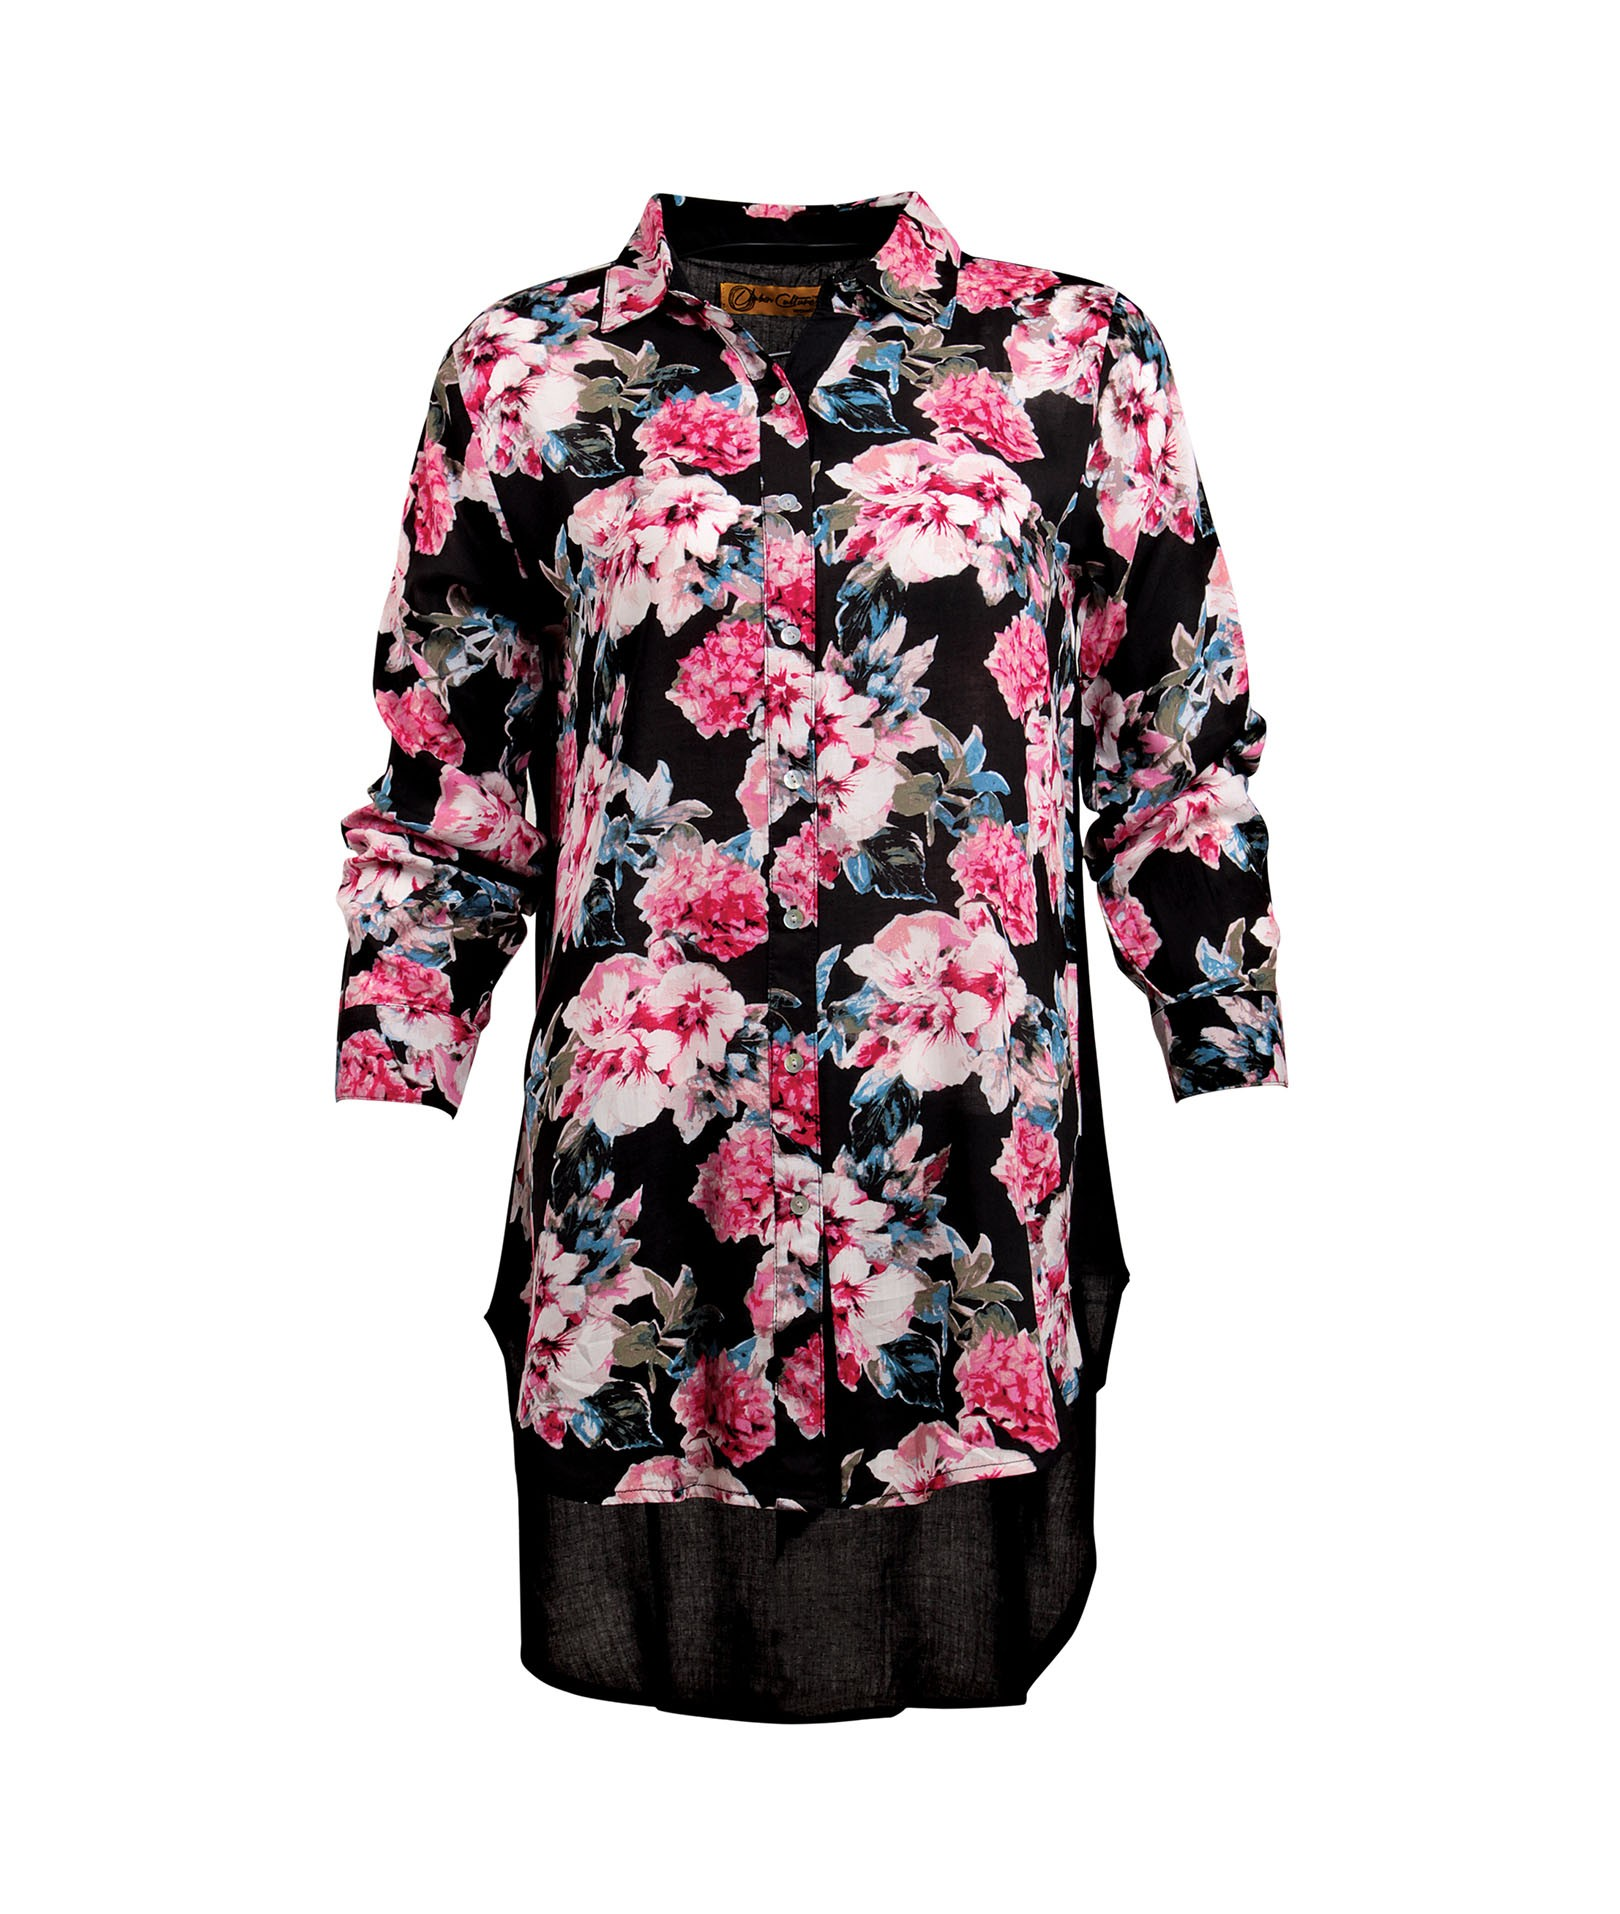 Urban-Culture-Shirts-Collection-2014-2015 (5)